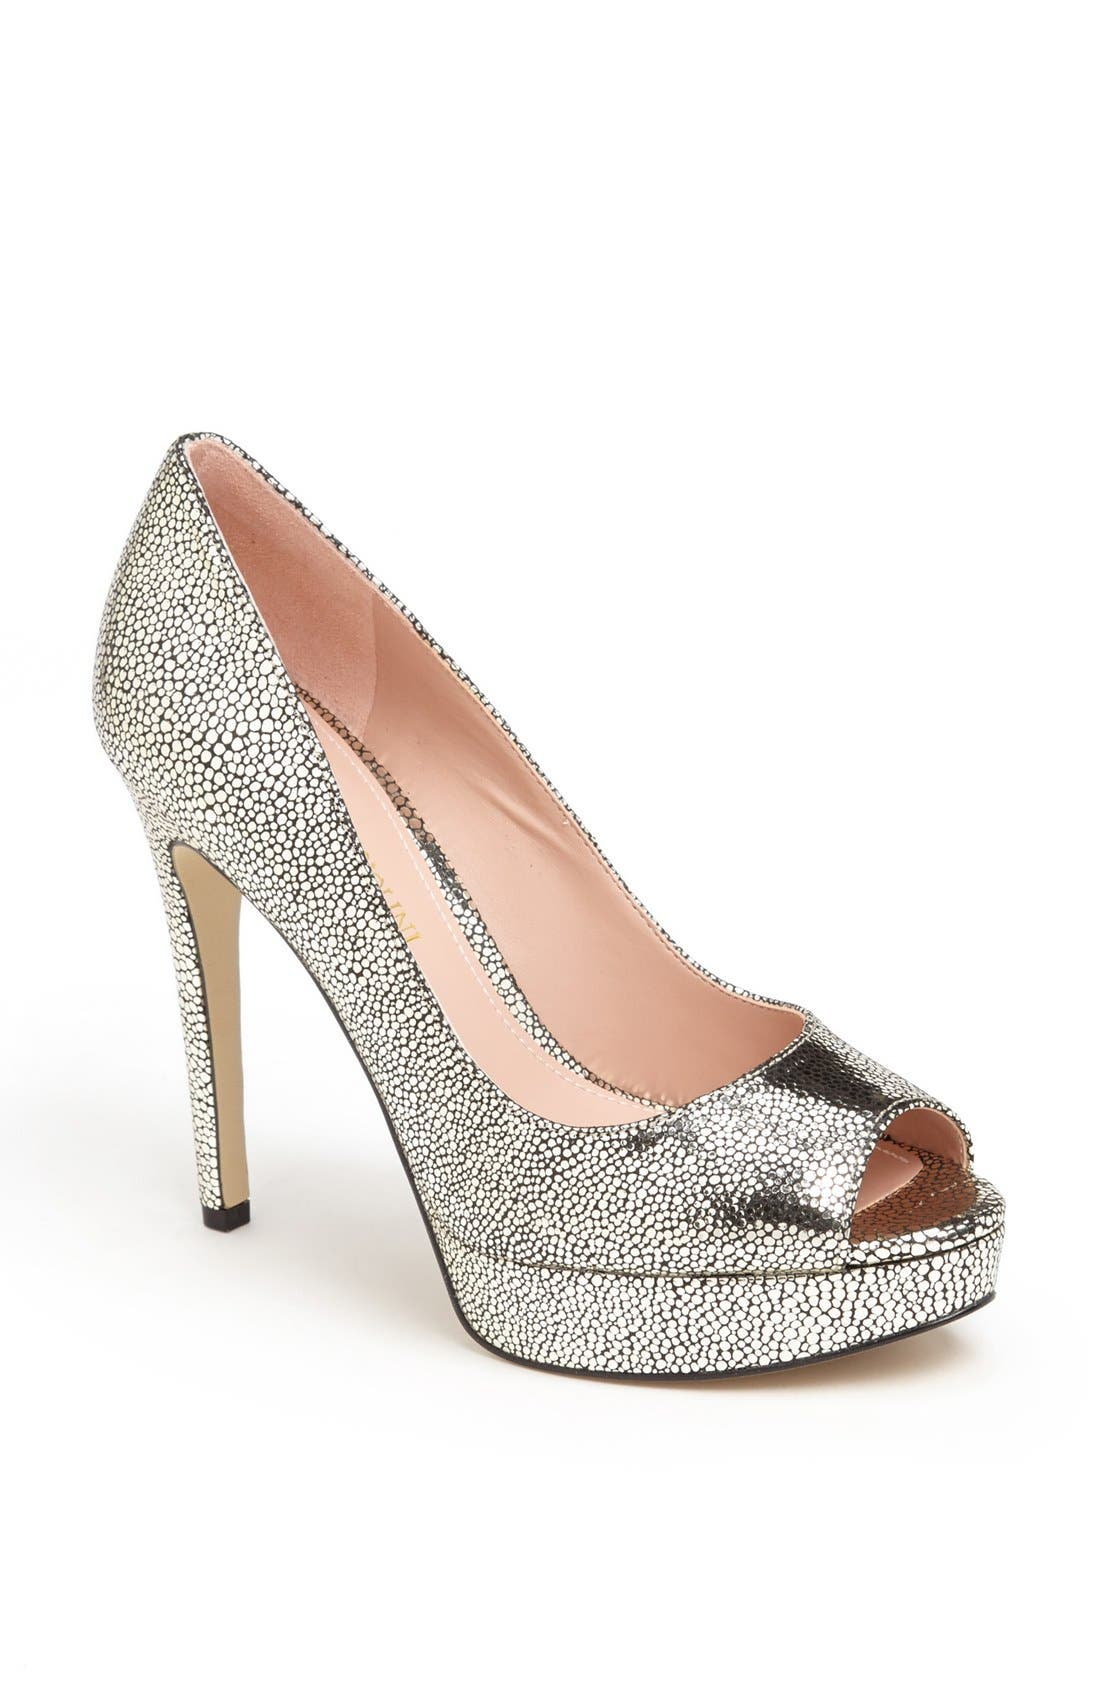 Alternate Image 1 Selected - Enzo Angiolini 'Atina' Pump (Nordstrom Exclusive)